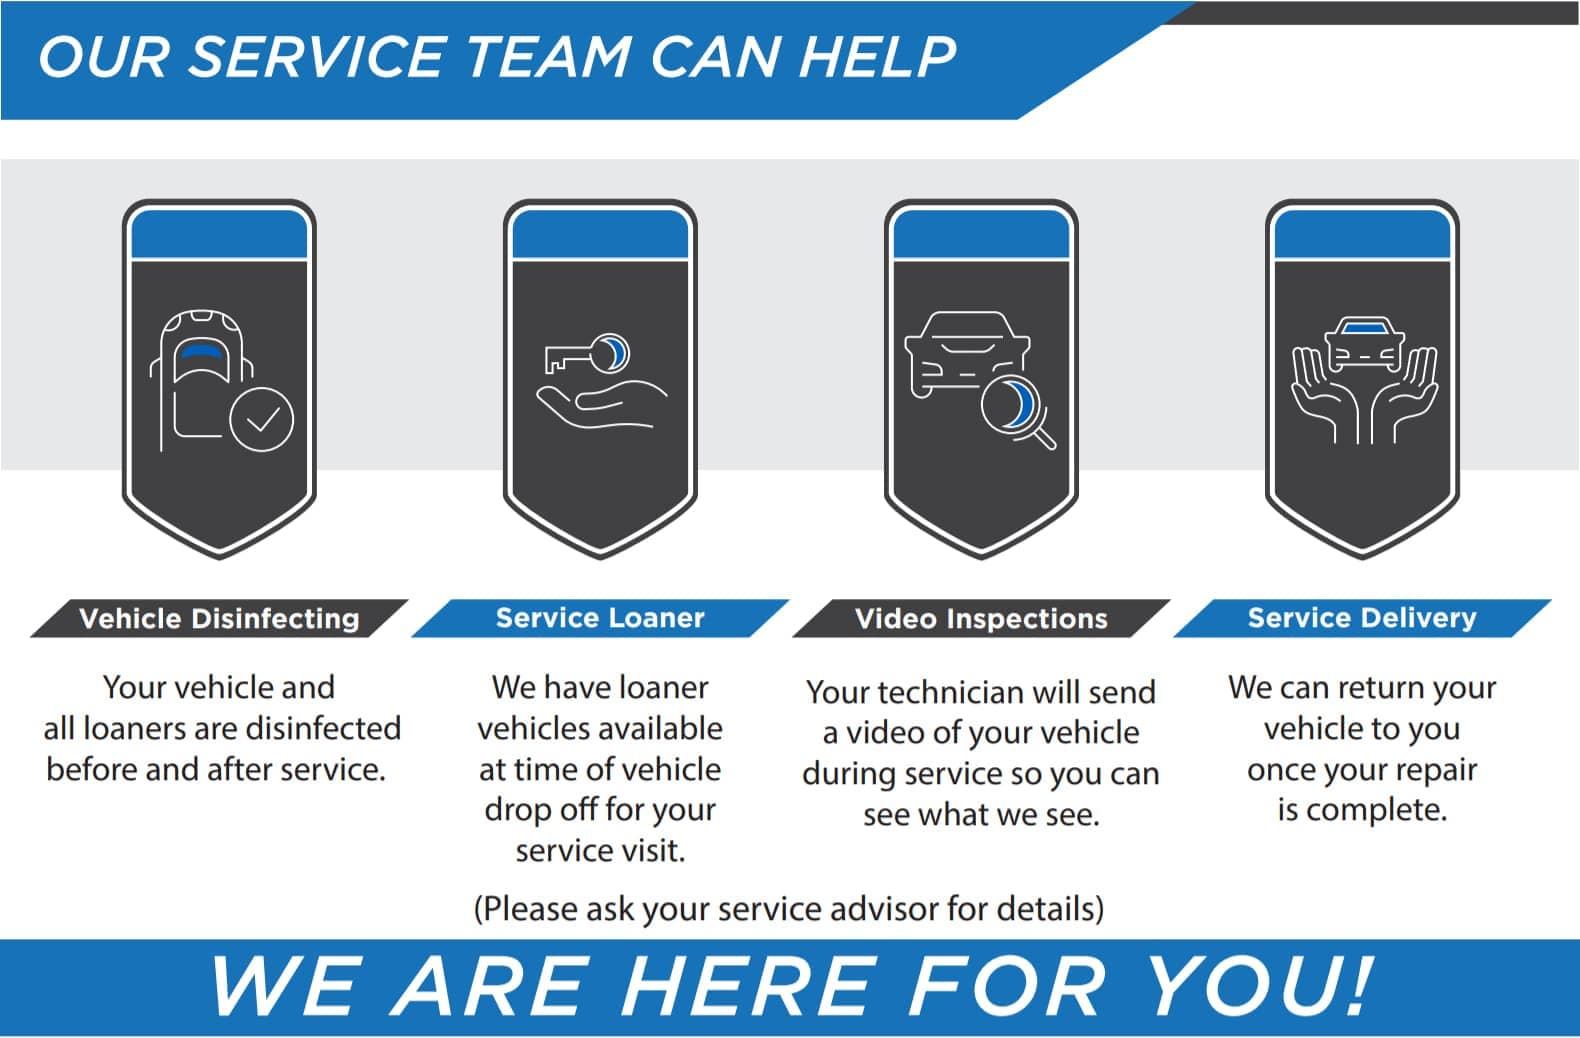 Our Service Team Can Help